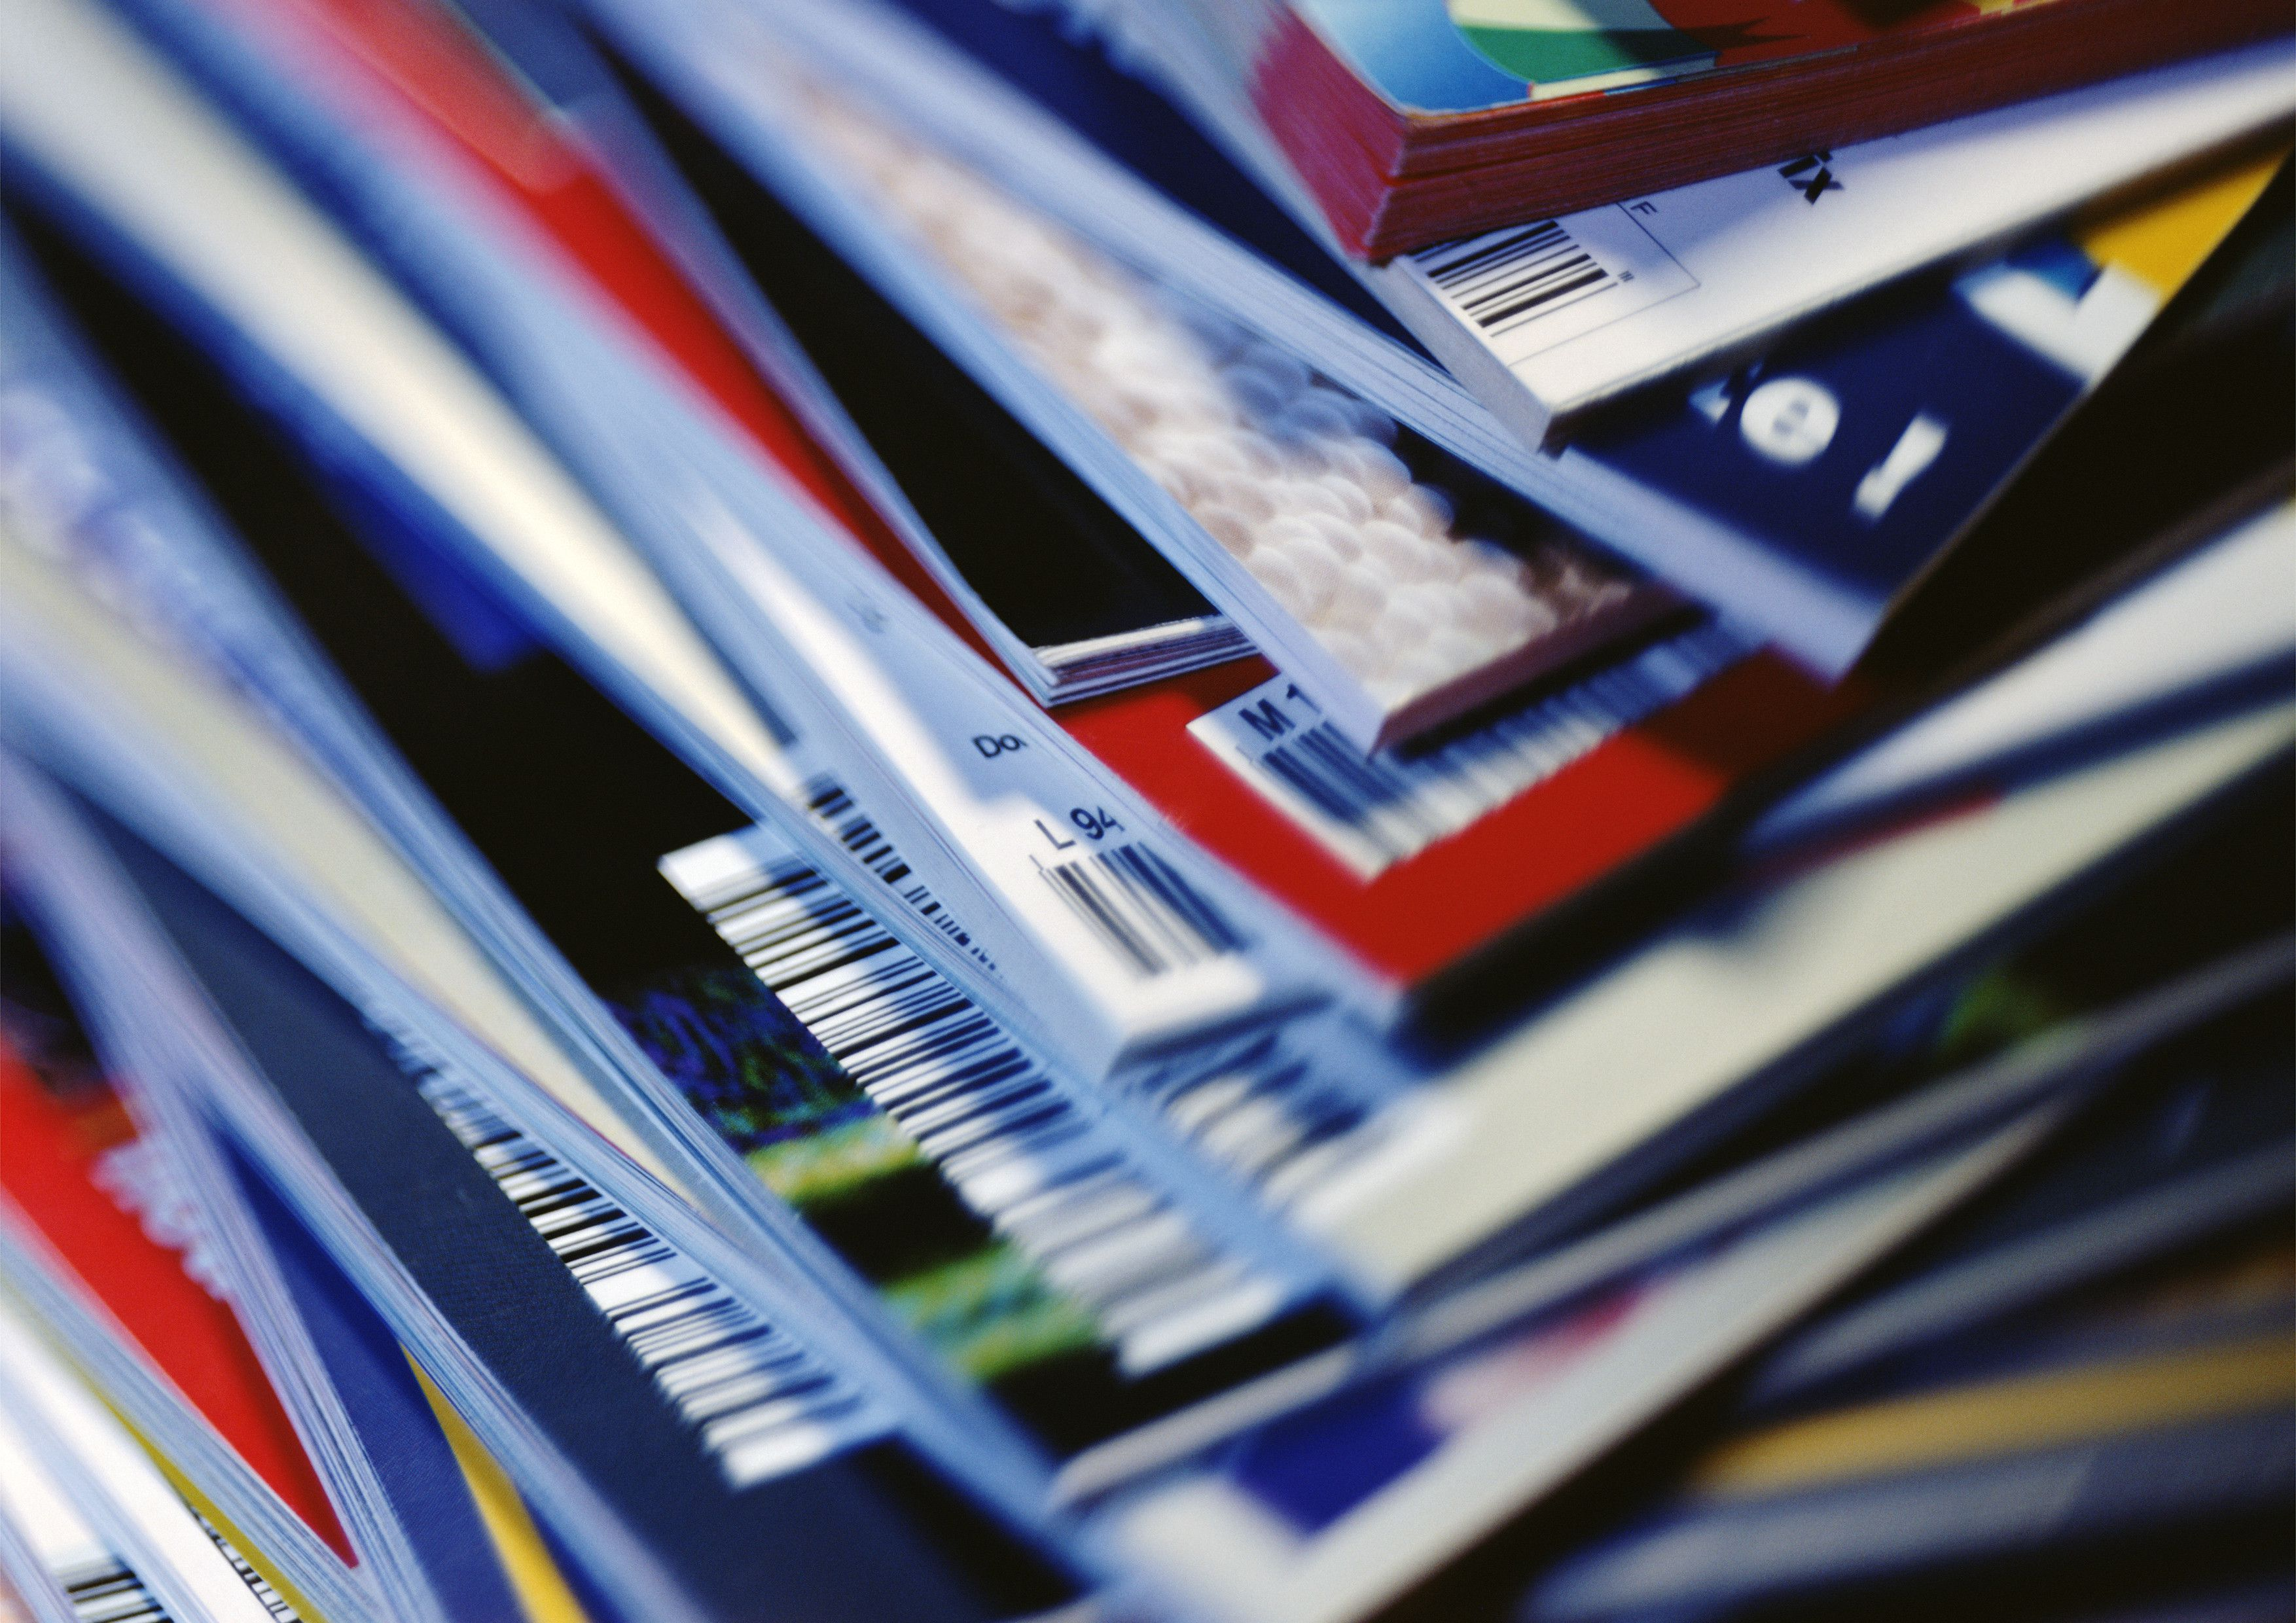 disorderly-stack-of-magazines--extreme-close-up-on-corners-with-barcodes--full-frame-pha025000083-5c171a1cc9e77c0001c742fa.jpg (3508Ã?2480)